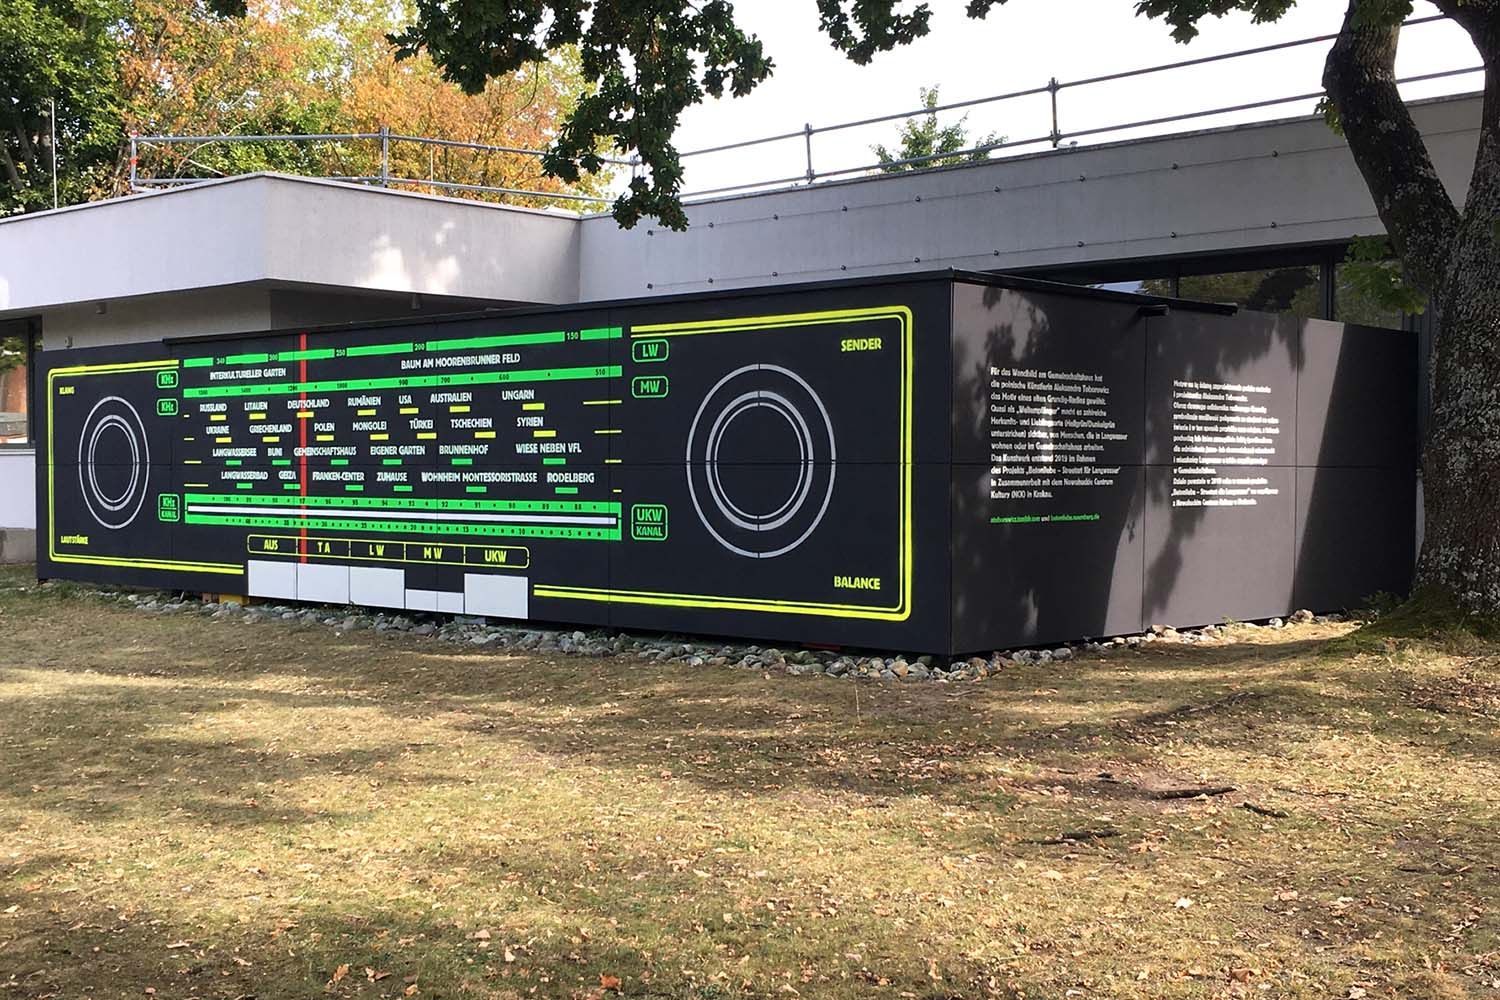 Radiomural District Identity and Mural by Aleksandra Toborowicz is Winner in Cultural Heritage and Culture Industry Design Category, 2019 - 2020.